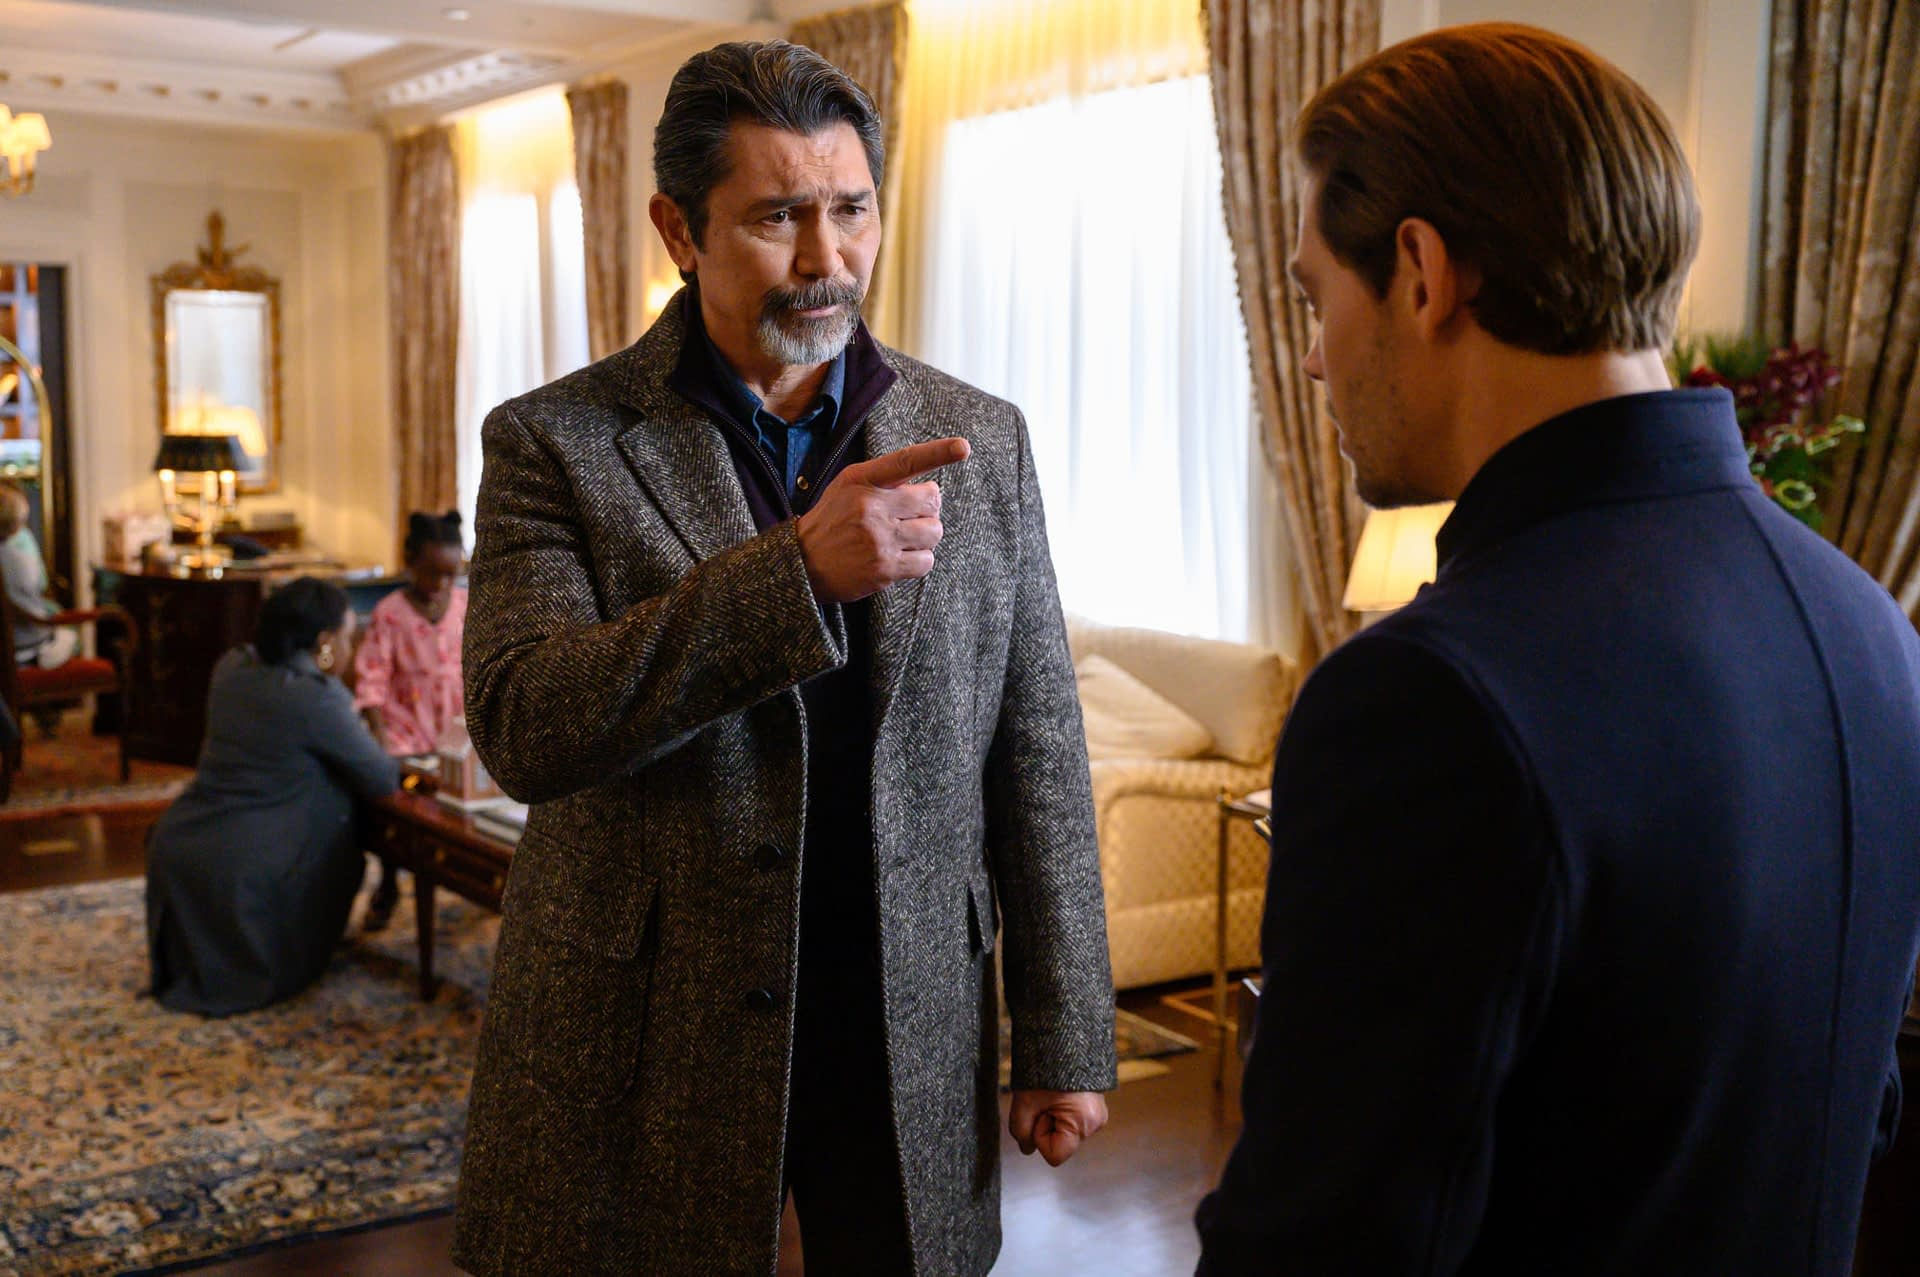 """Prodigal Son Episode 10 """"Silent Night"""" Preview"""